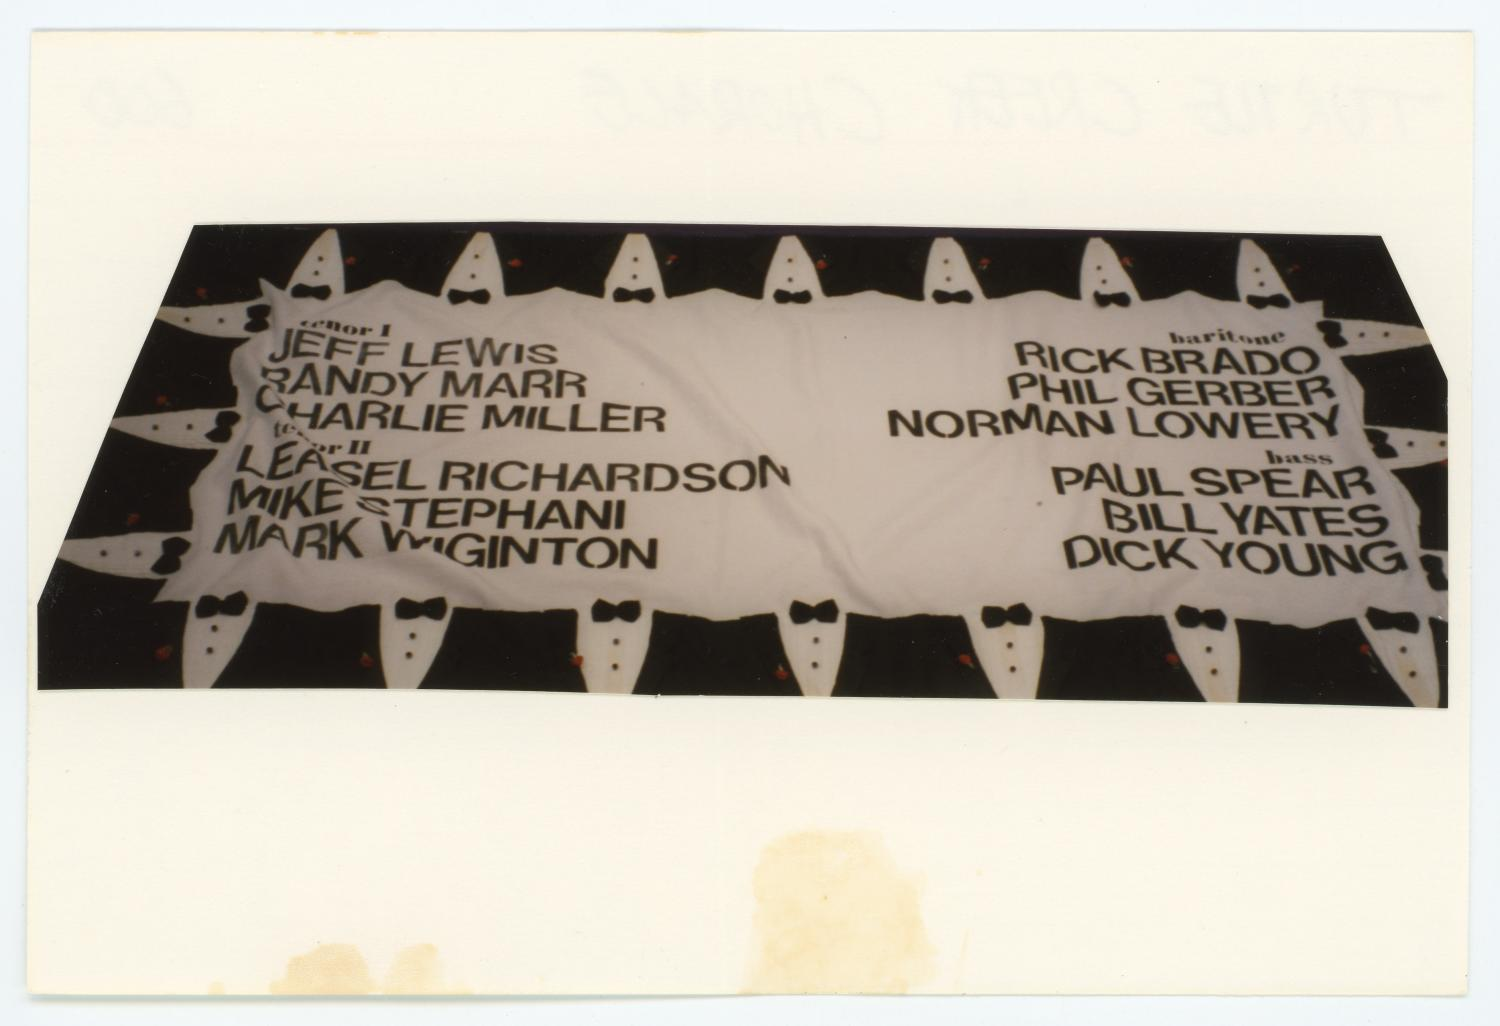 """[AIDS Memorial Quilt Panel for Turtle Creek Chorale], Photograph of AIDS Memorial Quilt Panel for Turtle Creek Chorale. Quilt block number is 0600. Photograph of quilt has been cropped and mounted to a 4"""" x 6"""" index card.,"""